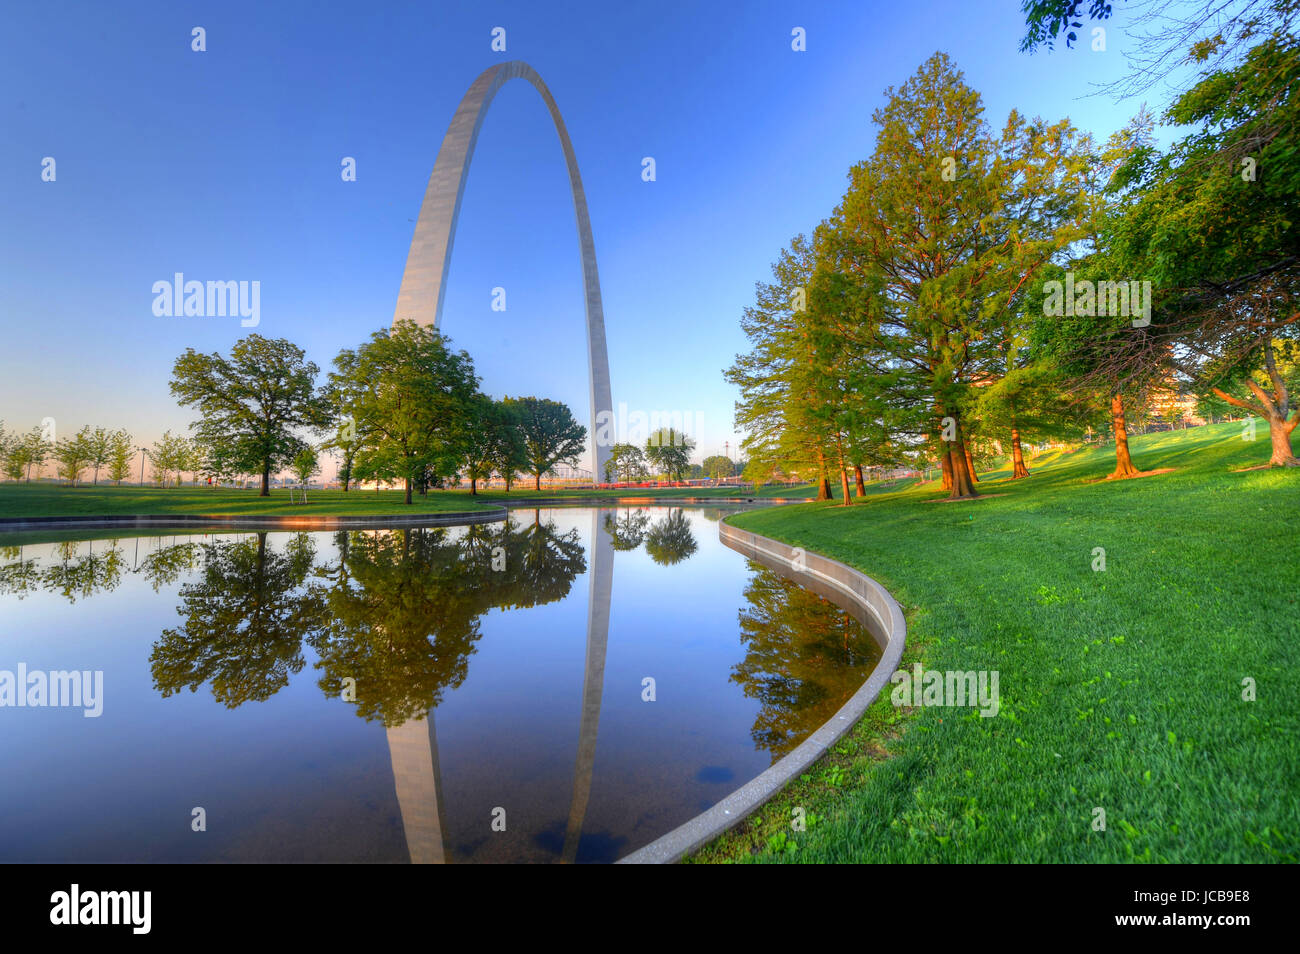 The Gateway Arch in St. Louis, Missouri. - Stock Image